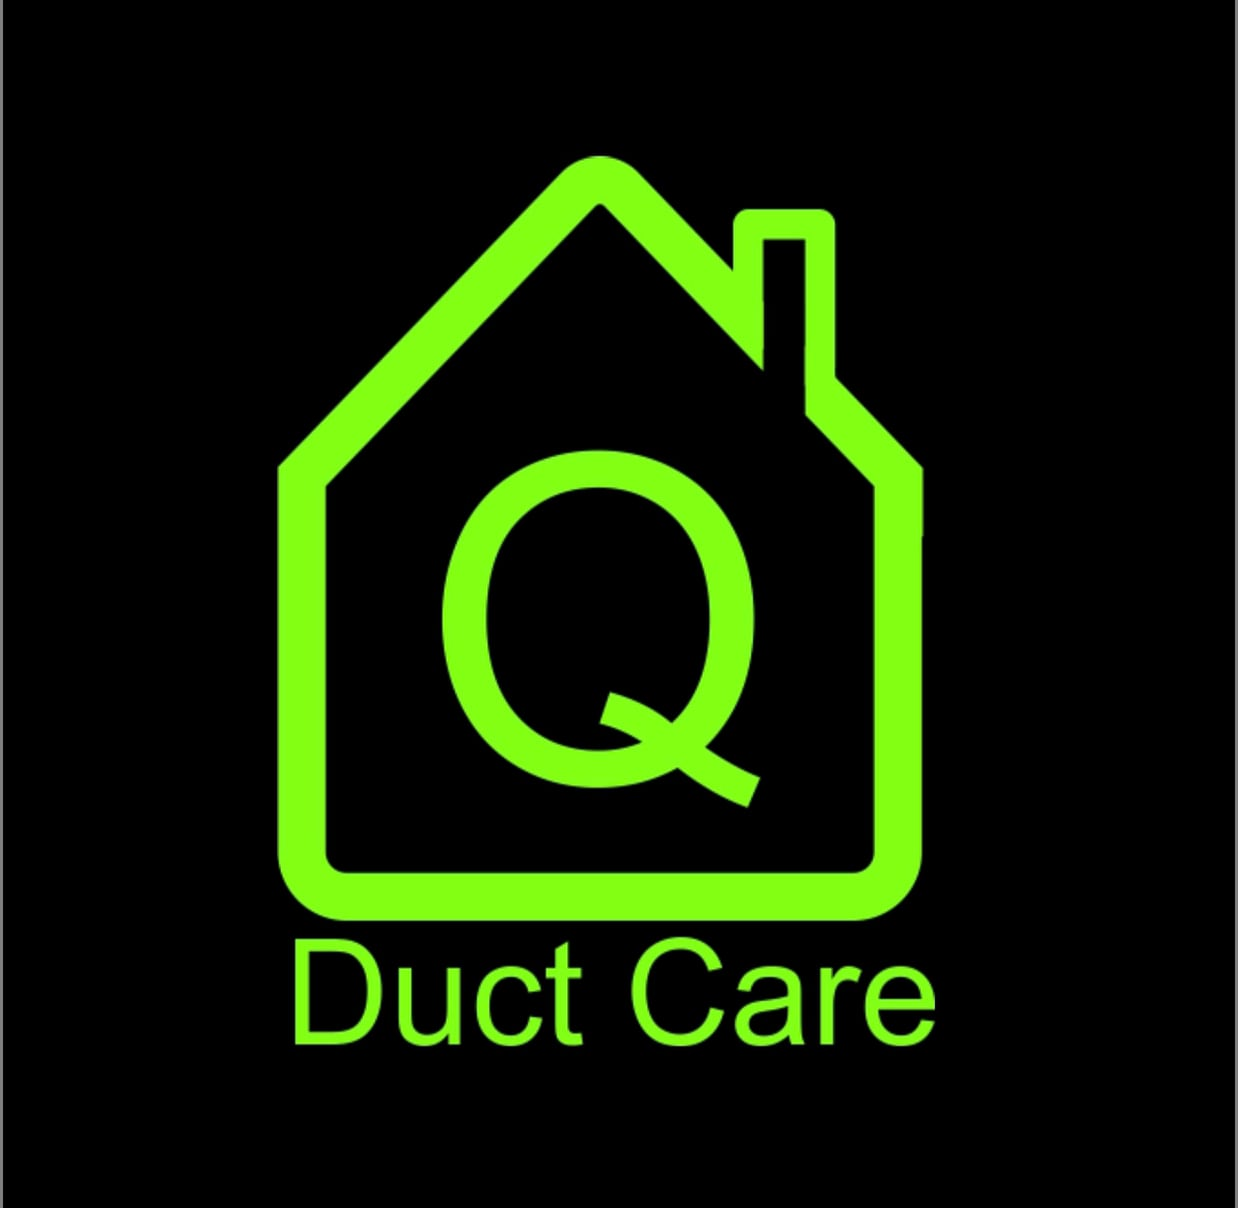 Qaz Air Duct Care